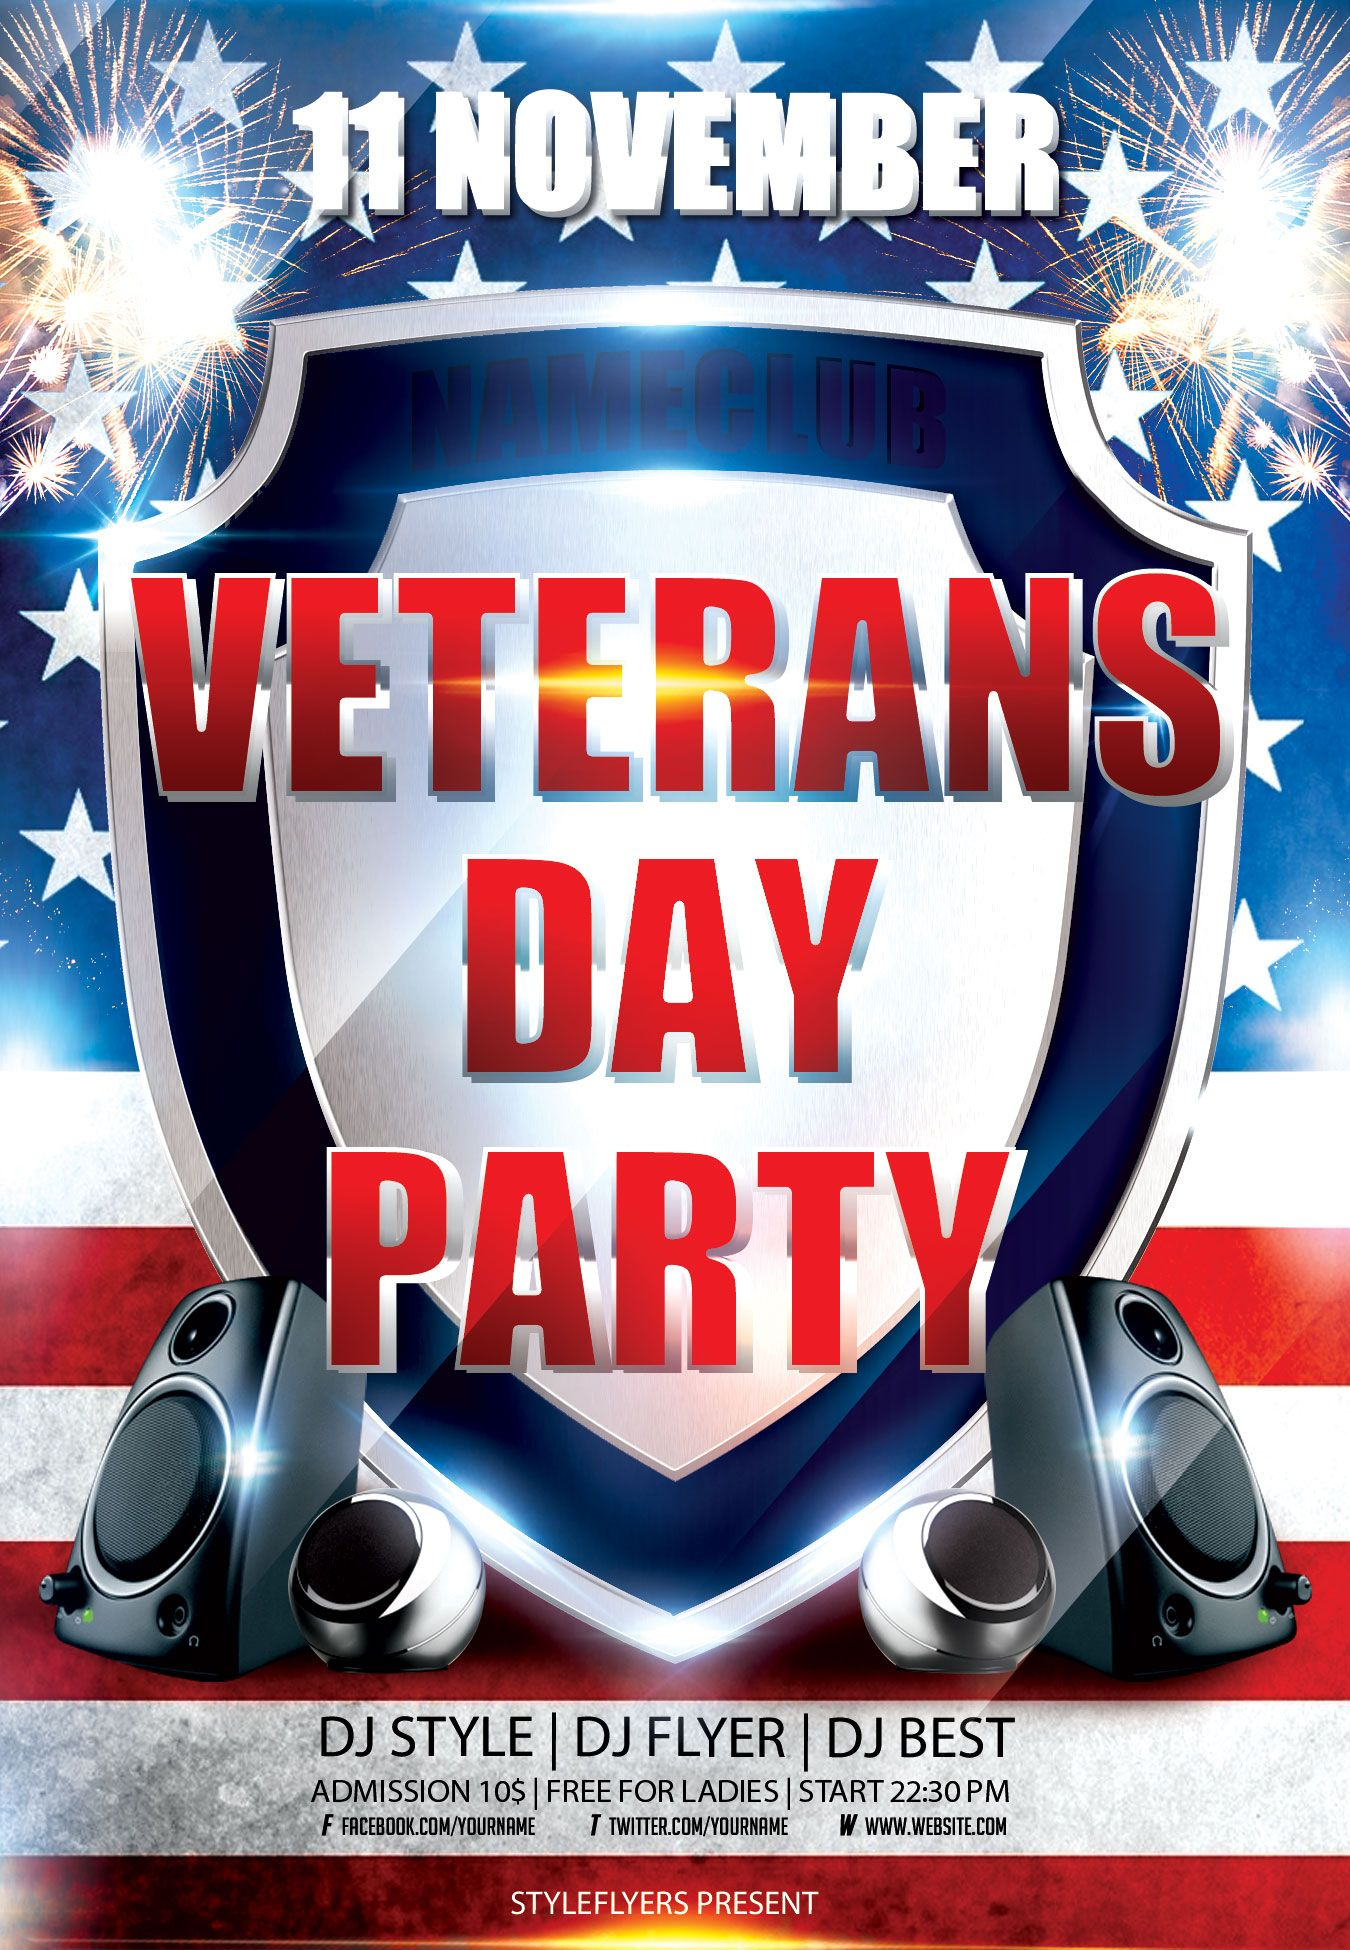 veterans day flyer psd template by styleflyerscom it can be best design for your comunity or club to celebrate lincoln birthday club dance retro